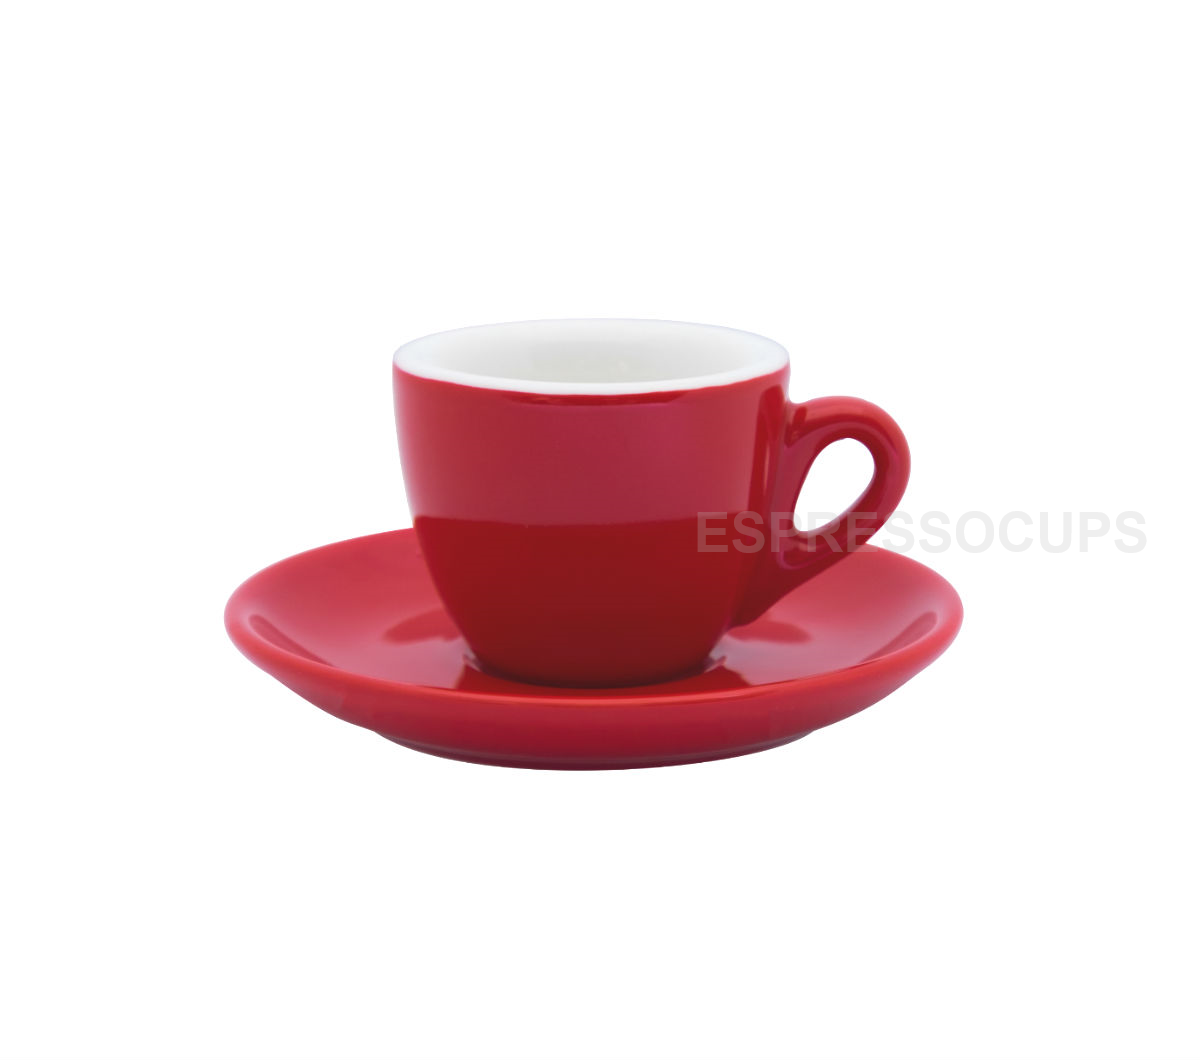 """ROSA"" Espresso Cups 70ml - red"